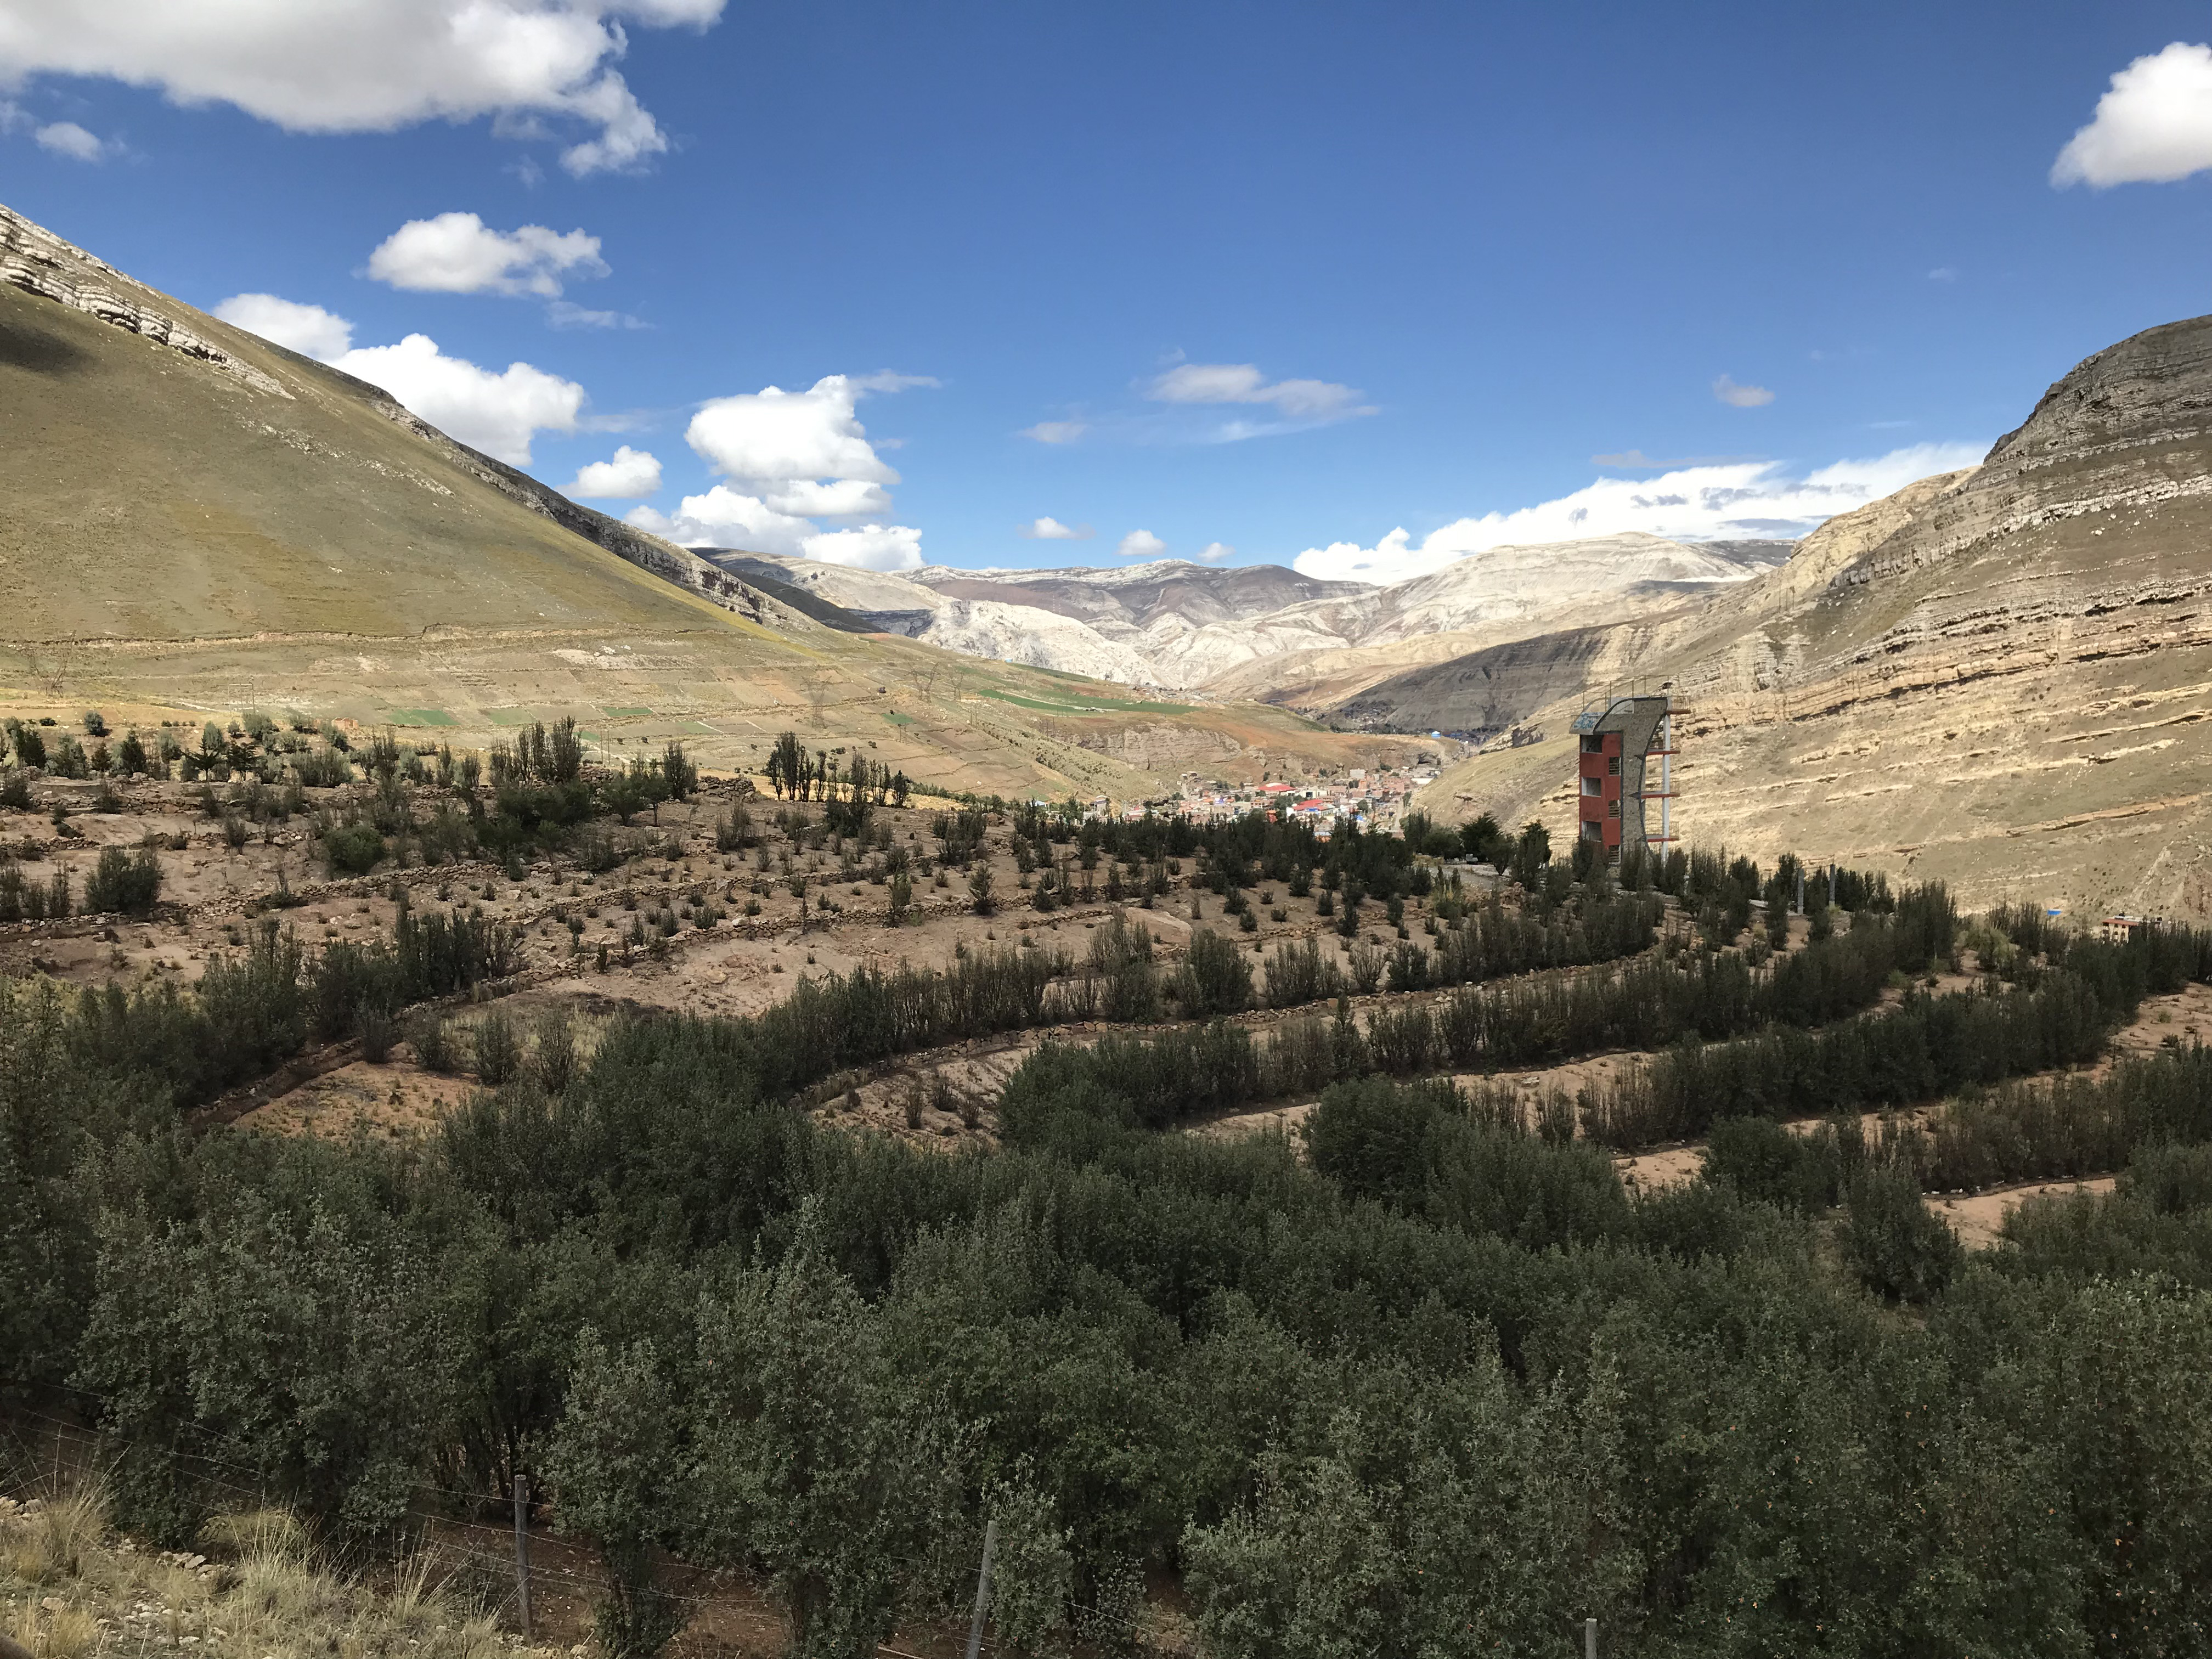 Residents of La Oroya have initiated a green wave of resistance by recuperating patches of poisoned land on the outskirts of La Oroya proper.